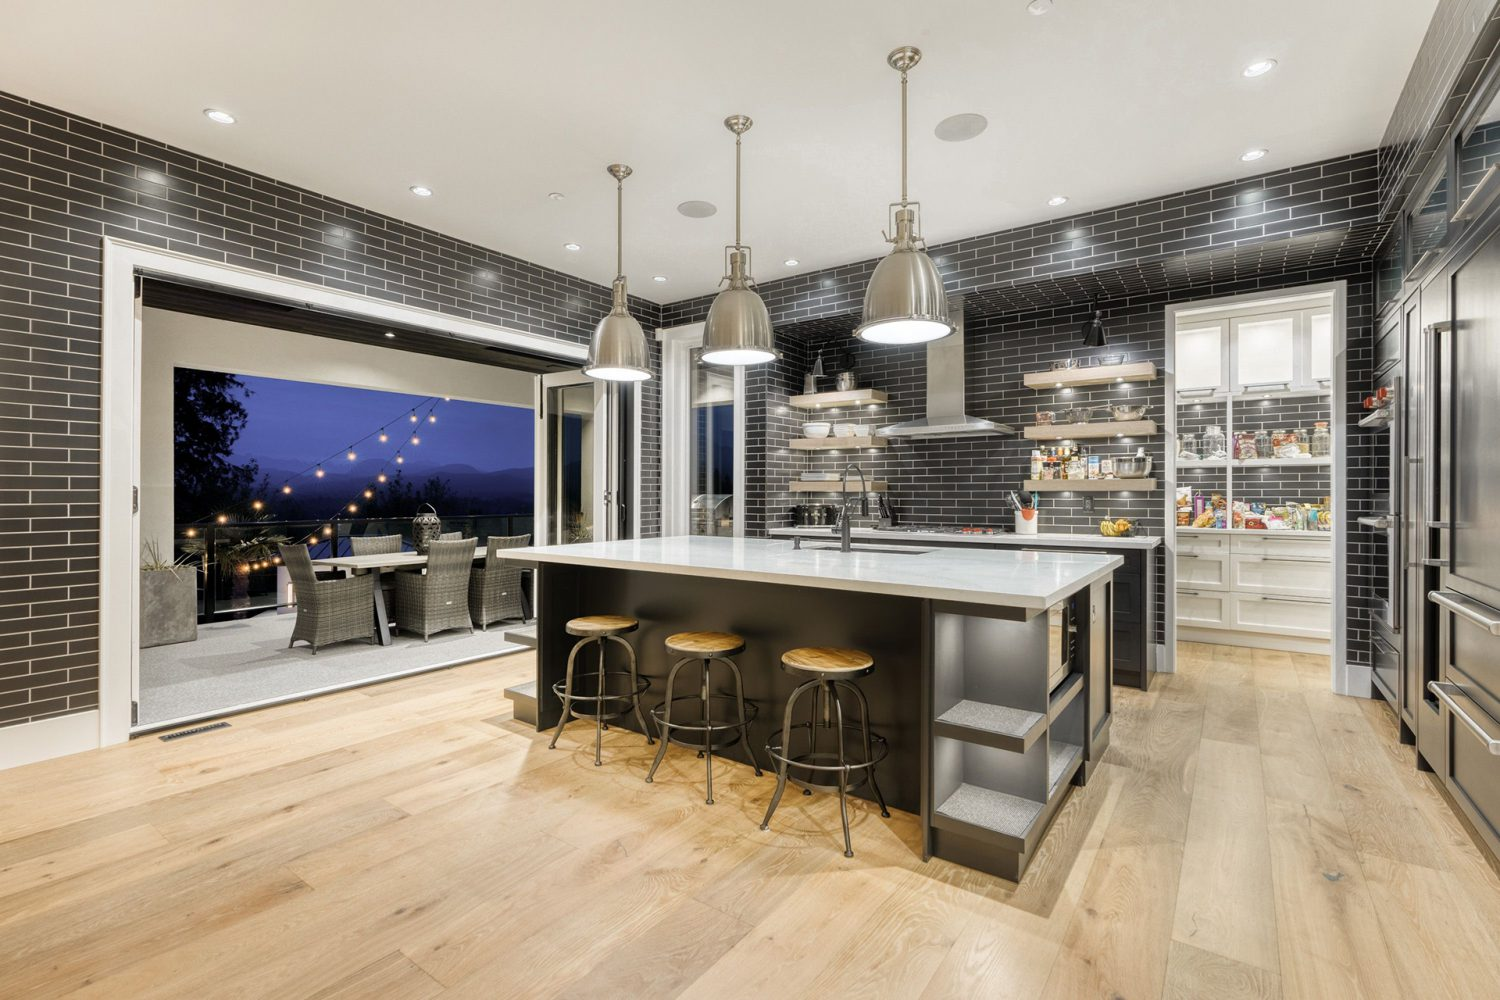 Luxury kitchen and island by Midland Premium Properties in the Greater Vancouver area.